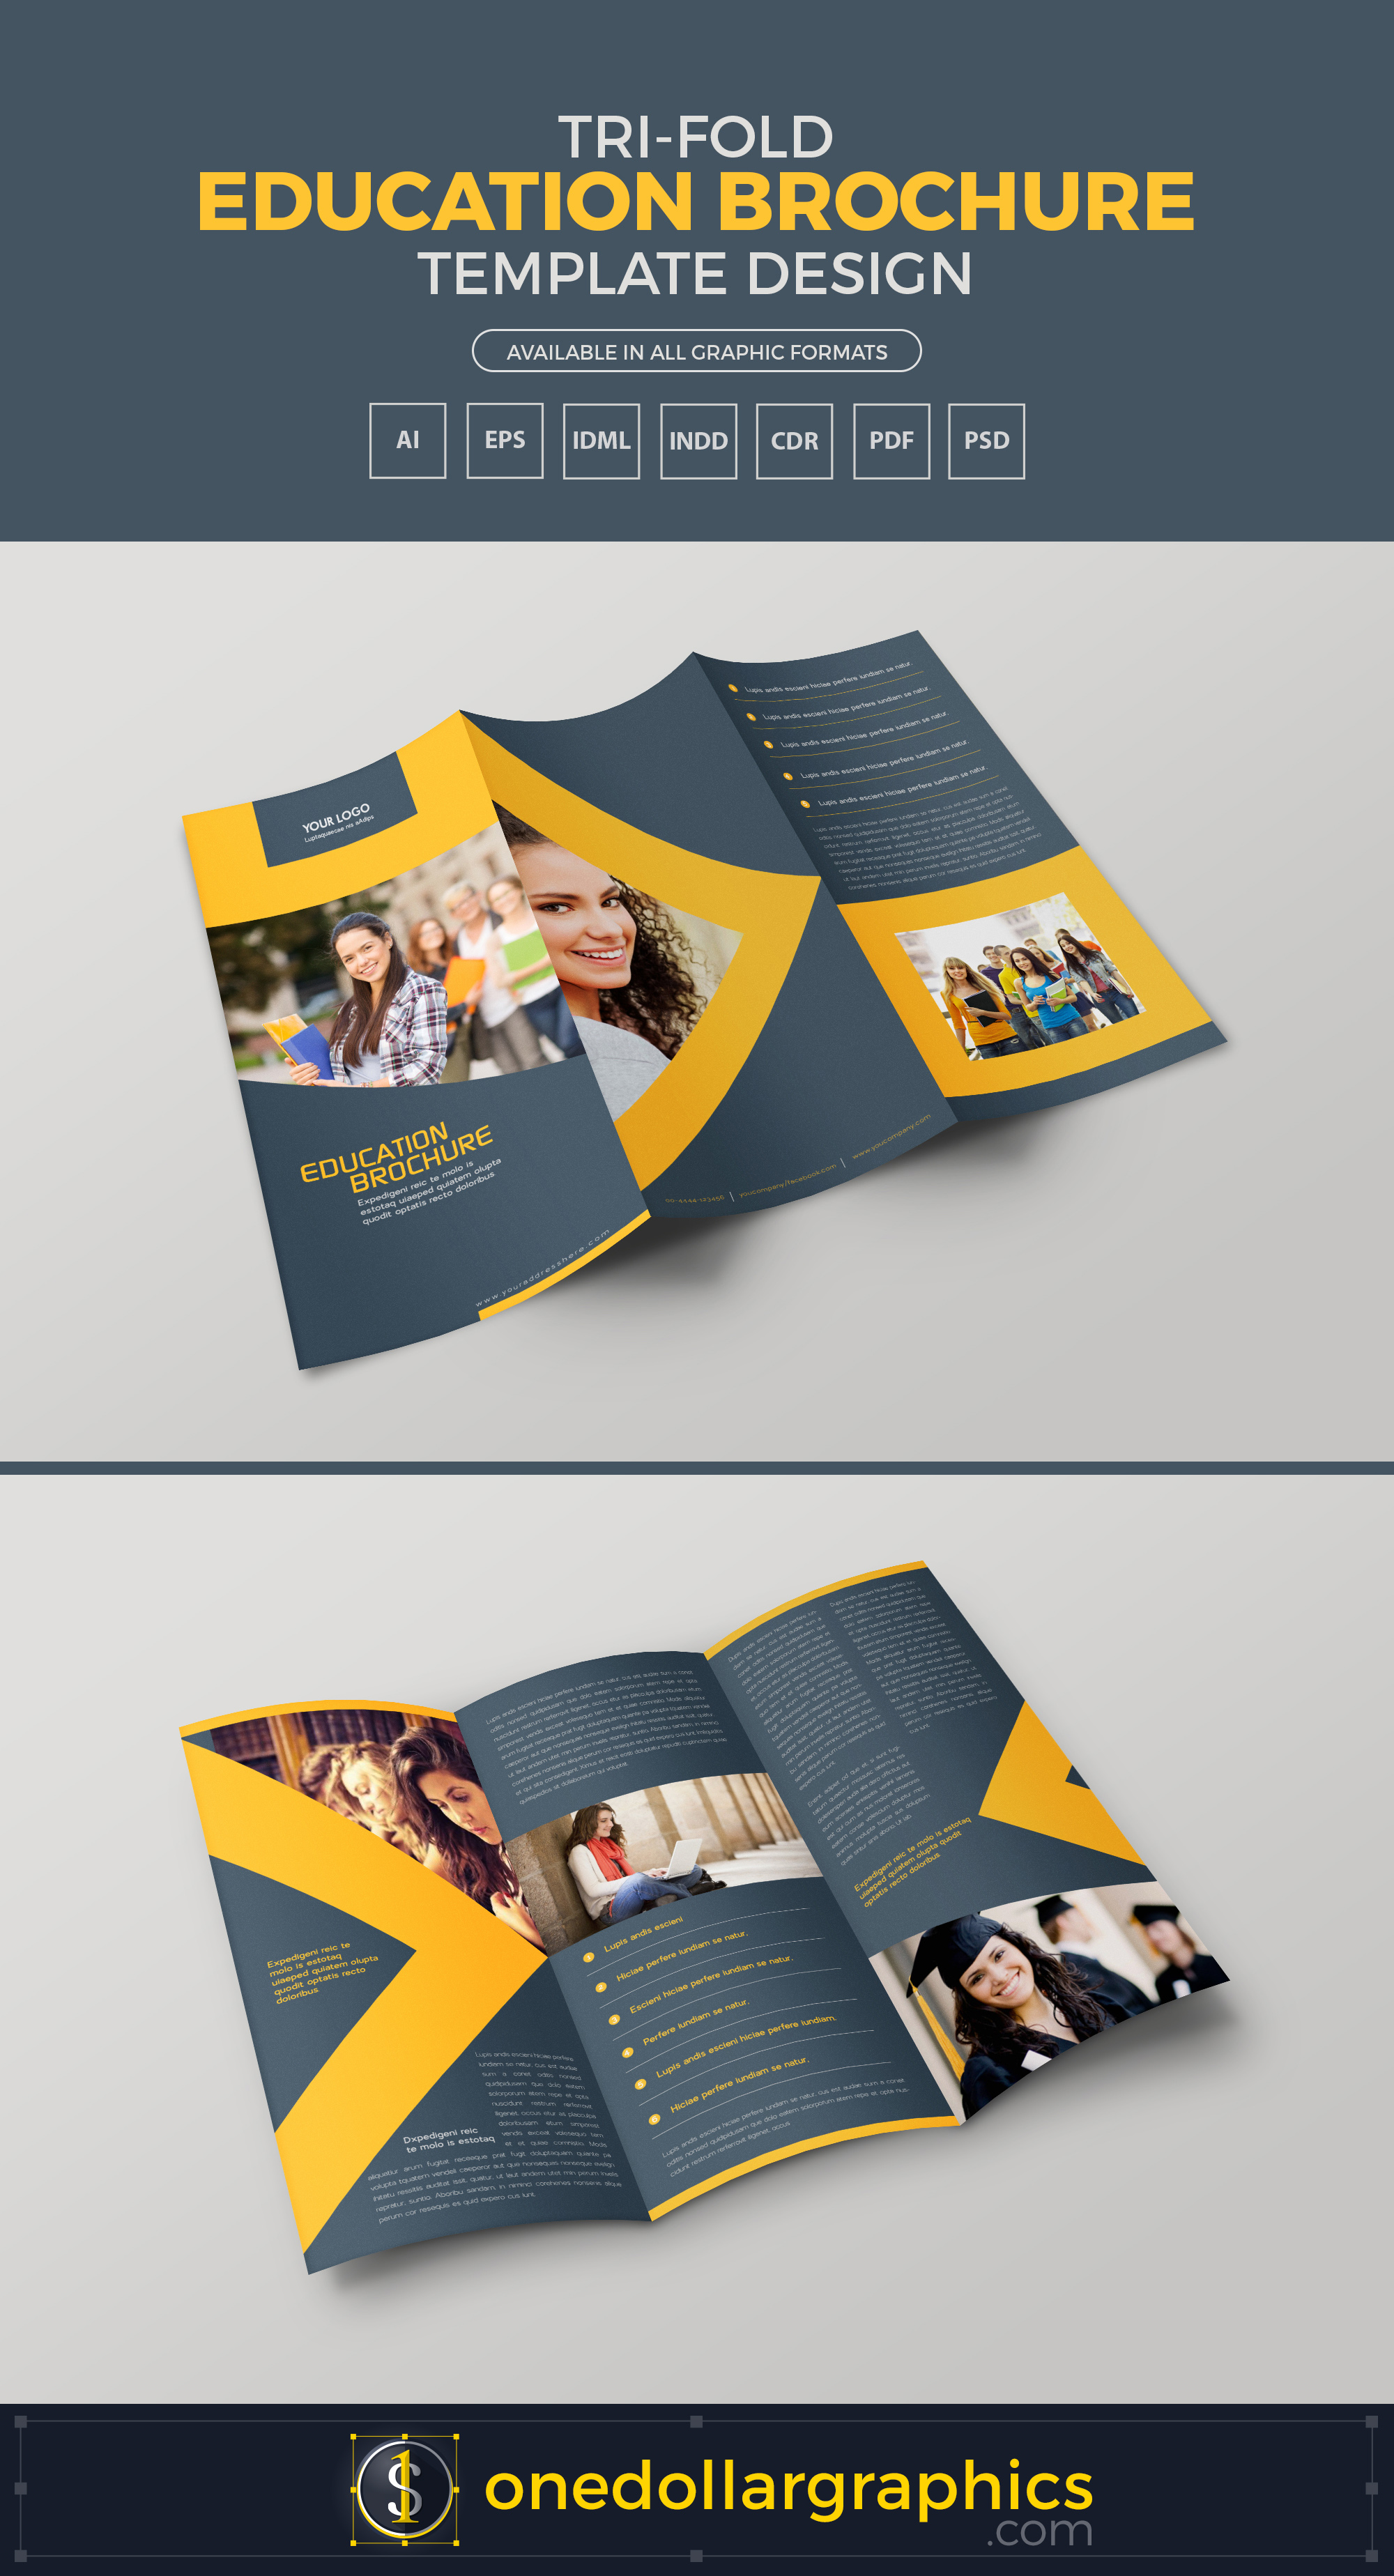 Tri fold education brochure template design in ai eps for One fold brochure template